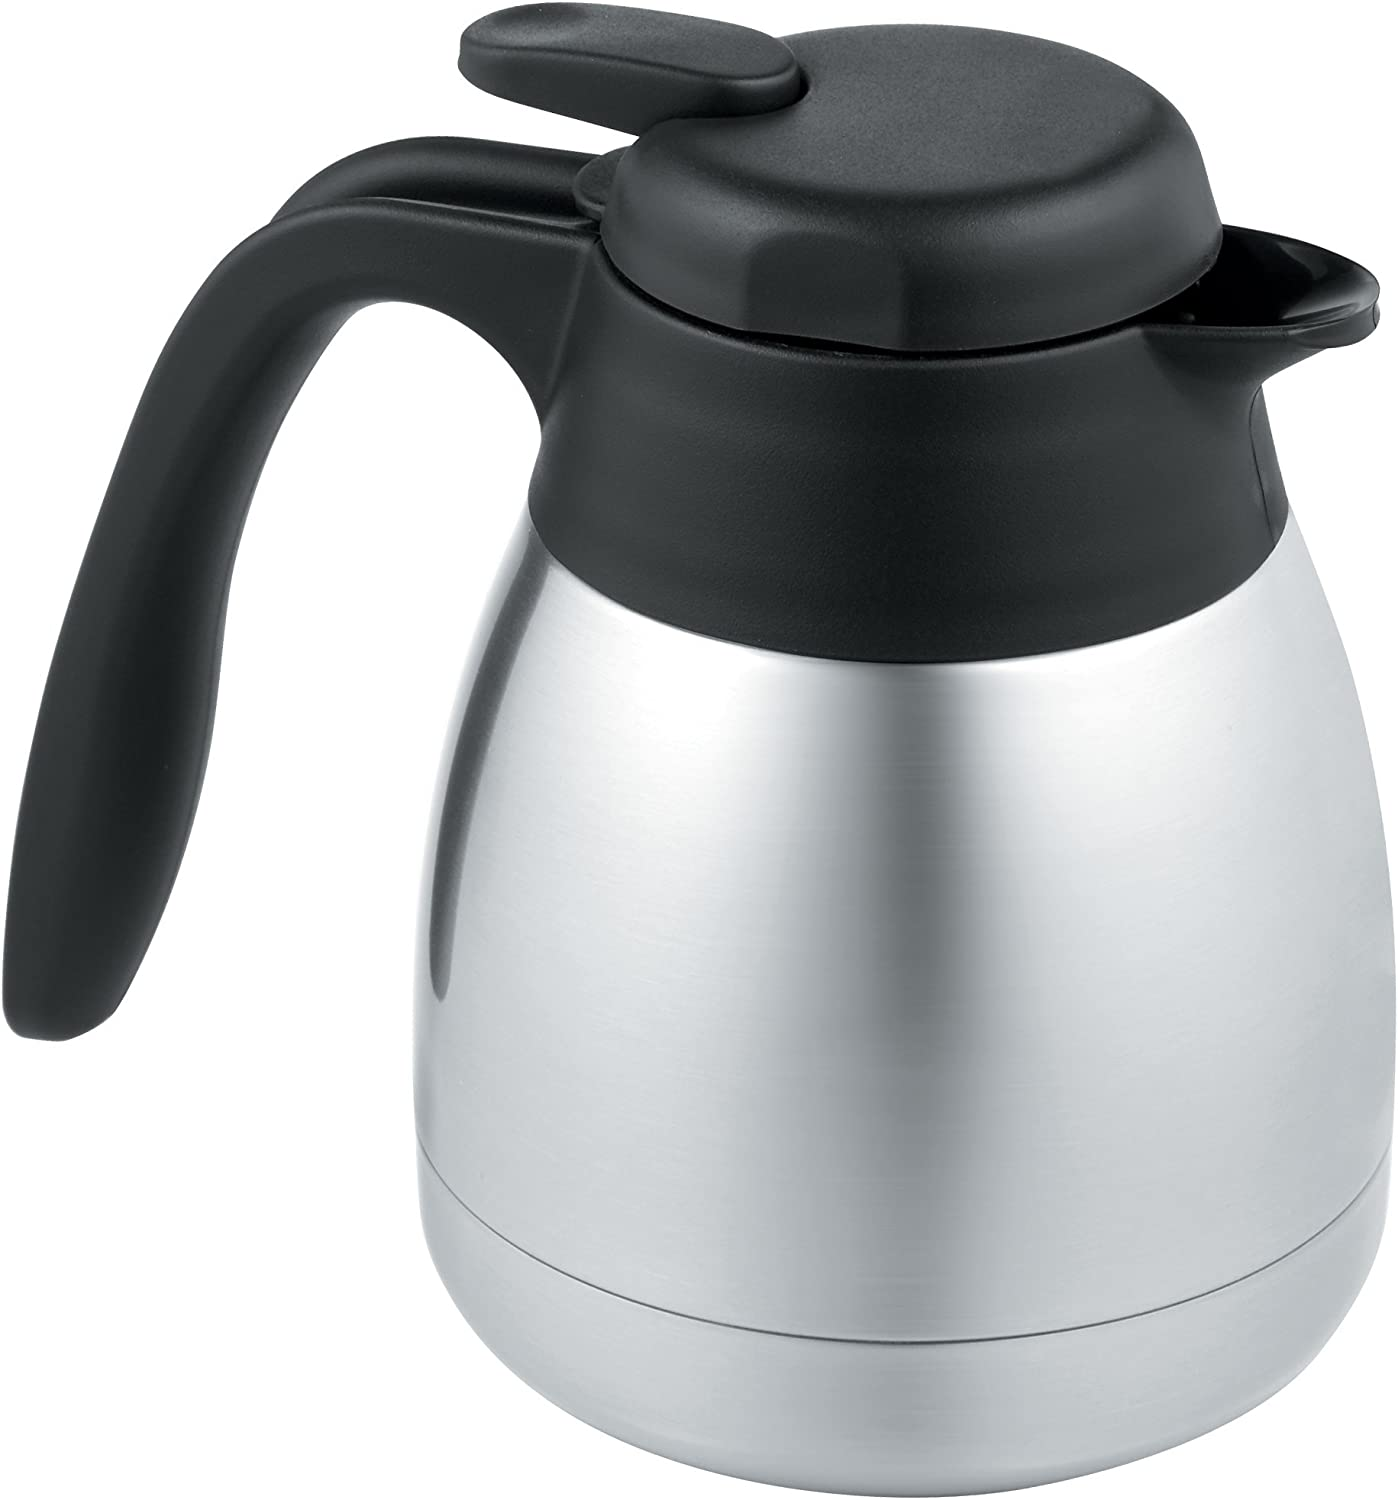 Thermos Nissan 20-Ounce Stainless Steel Carafe (Discontinued by Manufacturer) 71Hncm-3uaL